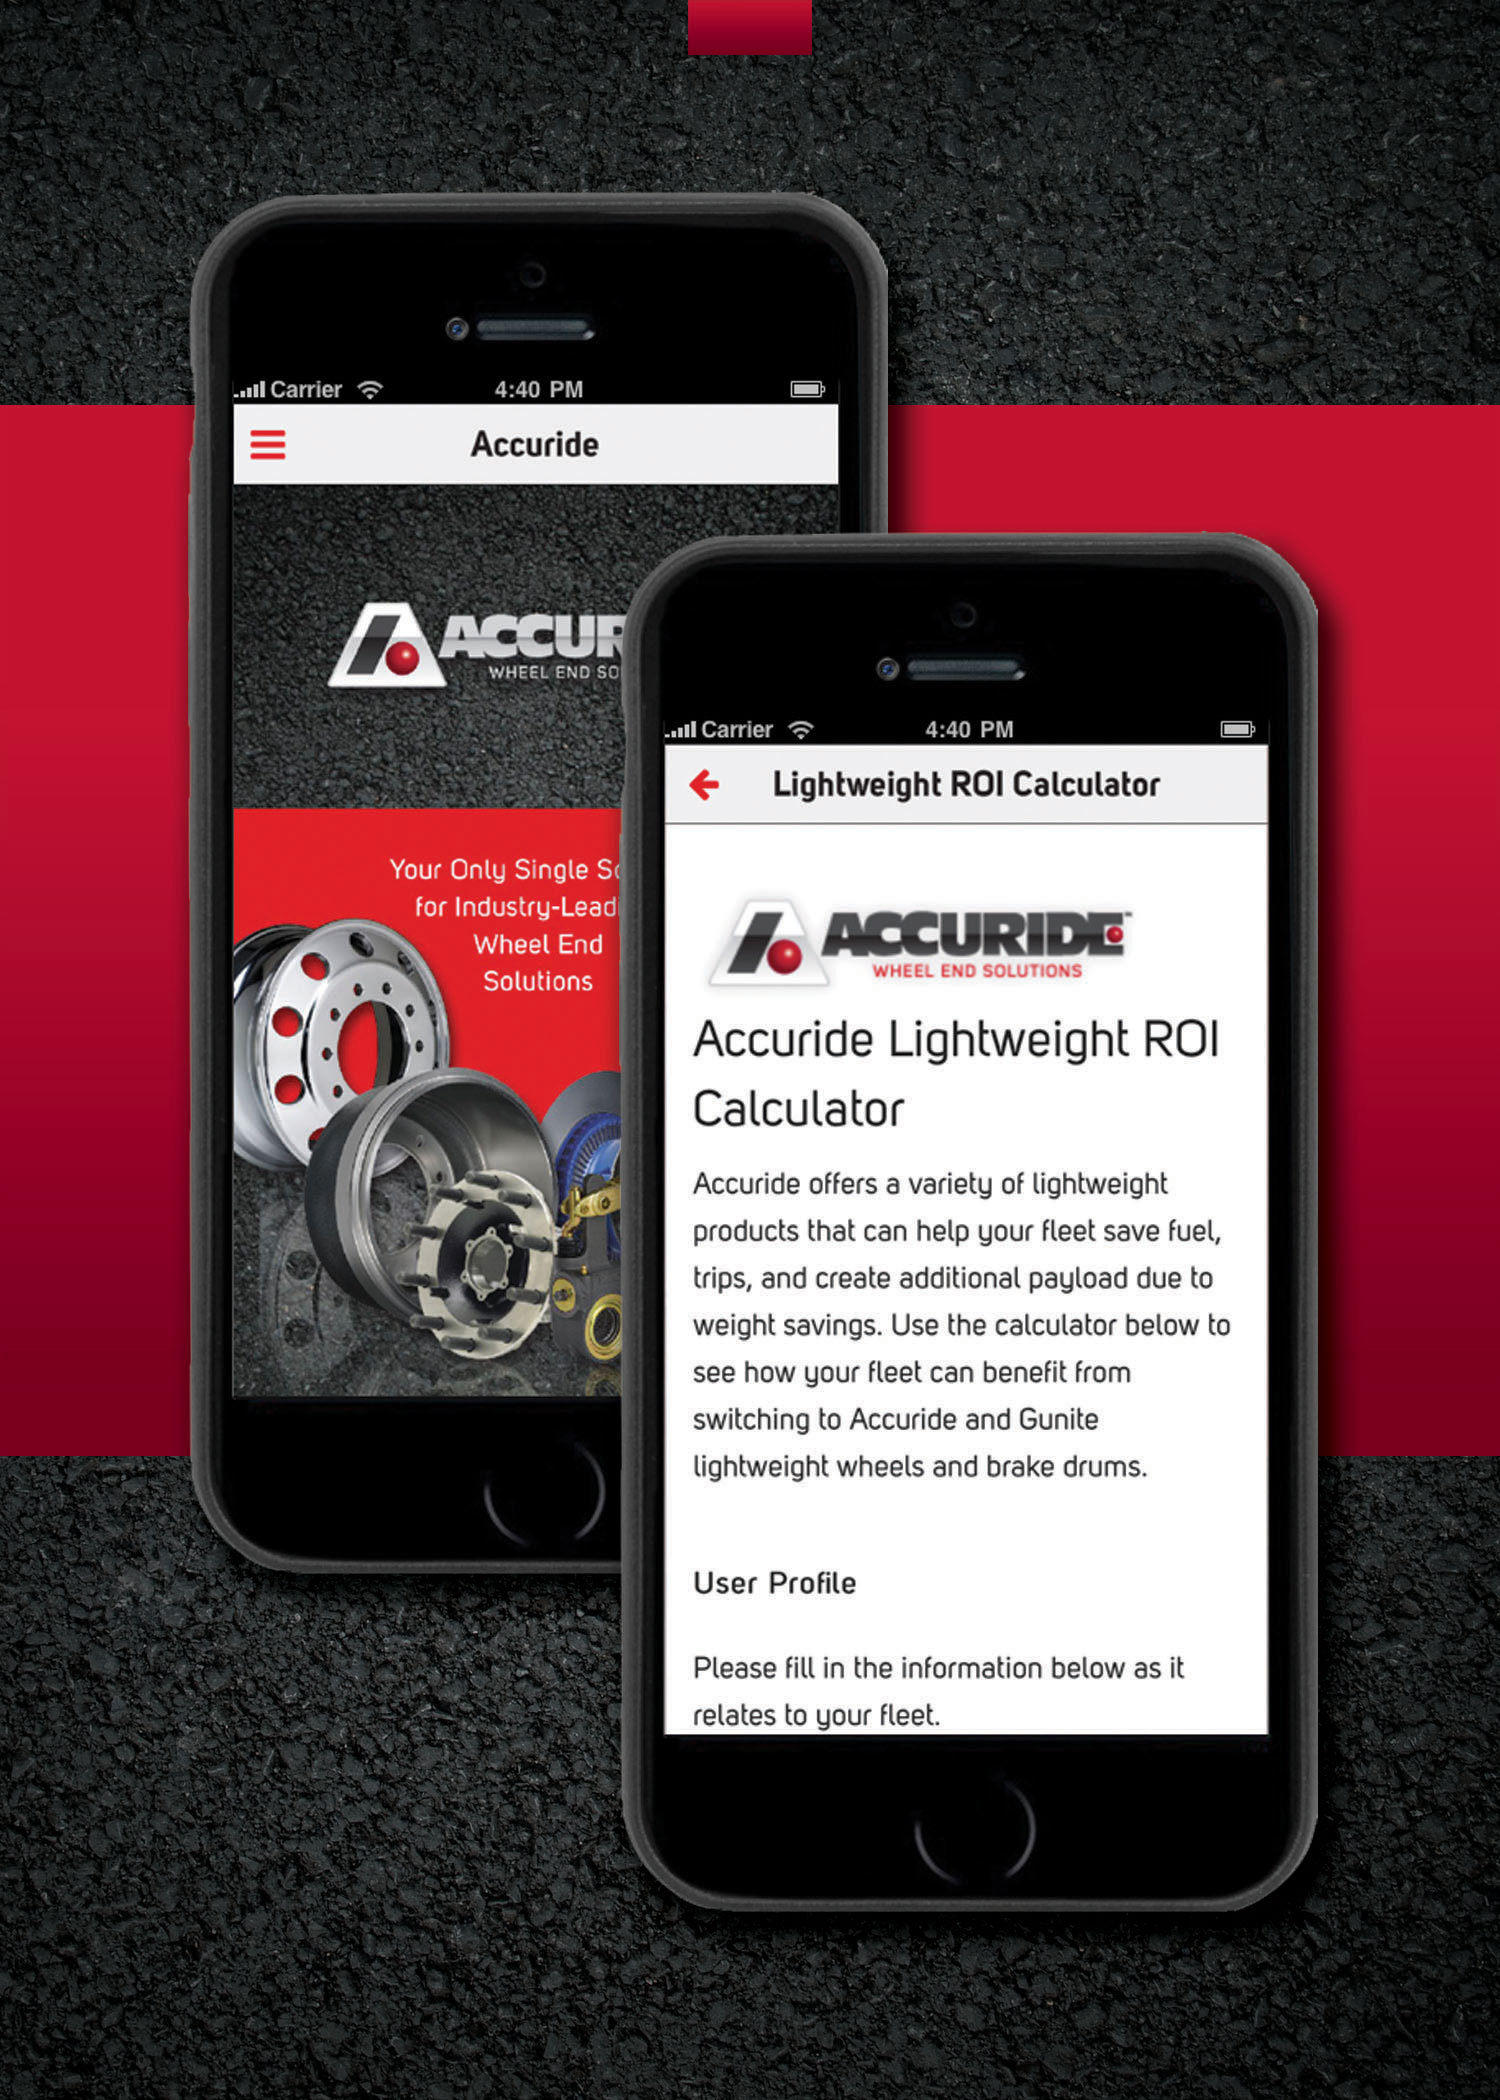 Accuride adds roi calculator to mobile app updates wheels catalog full size keyboard keysfo Gallery